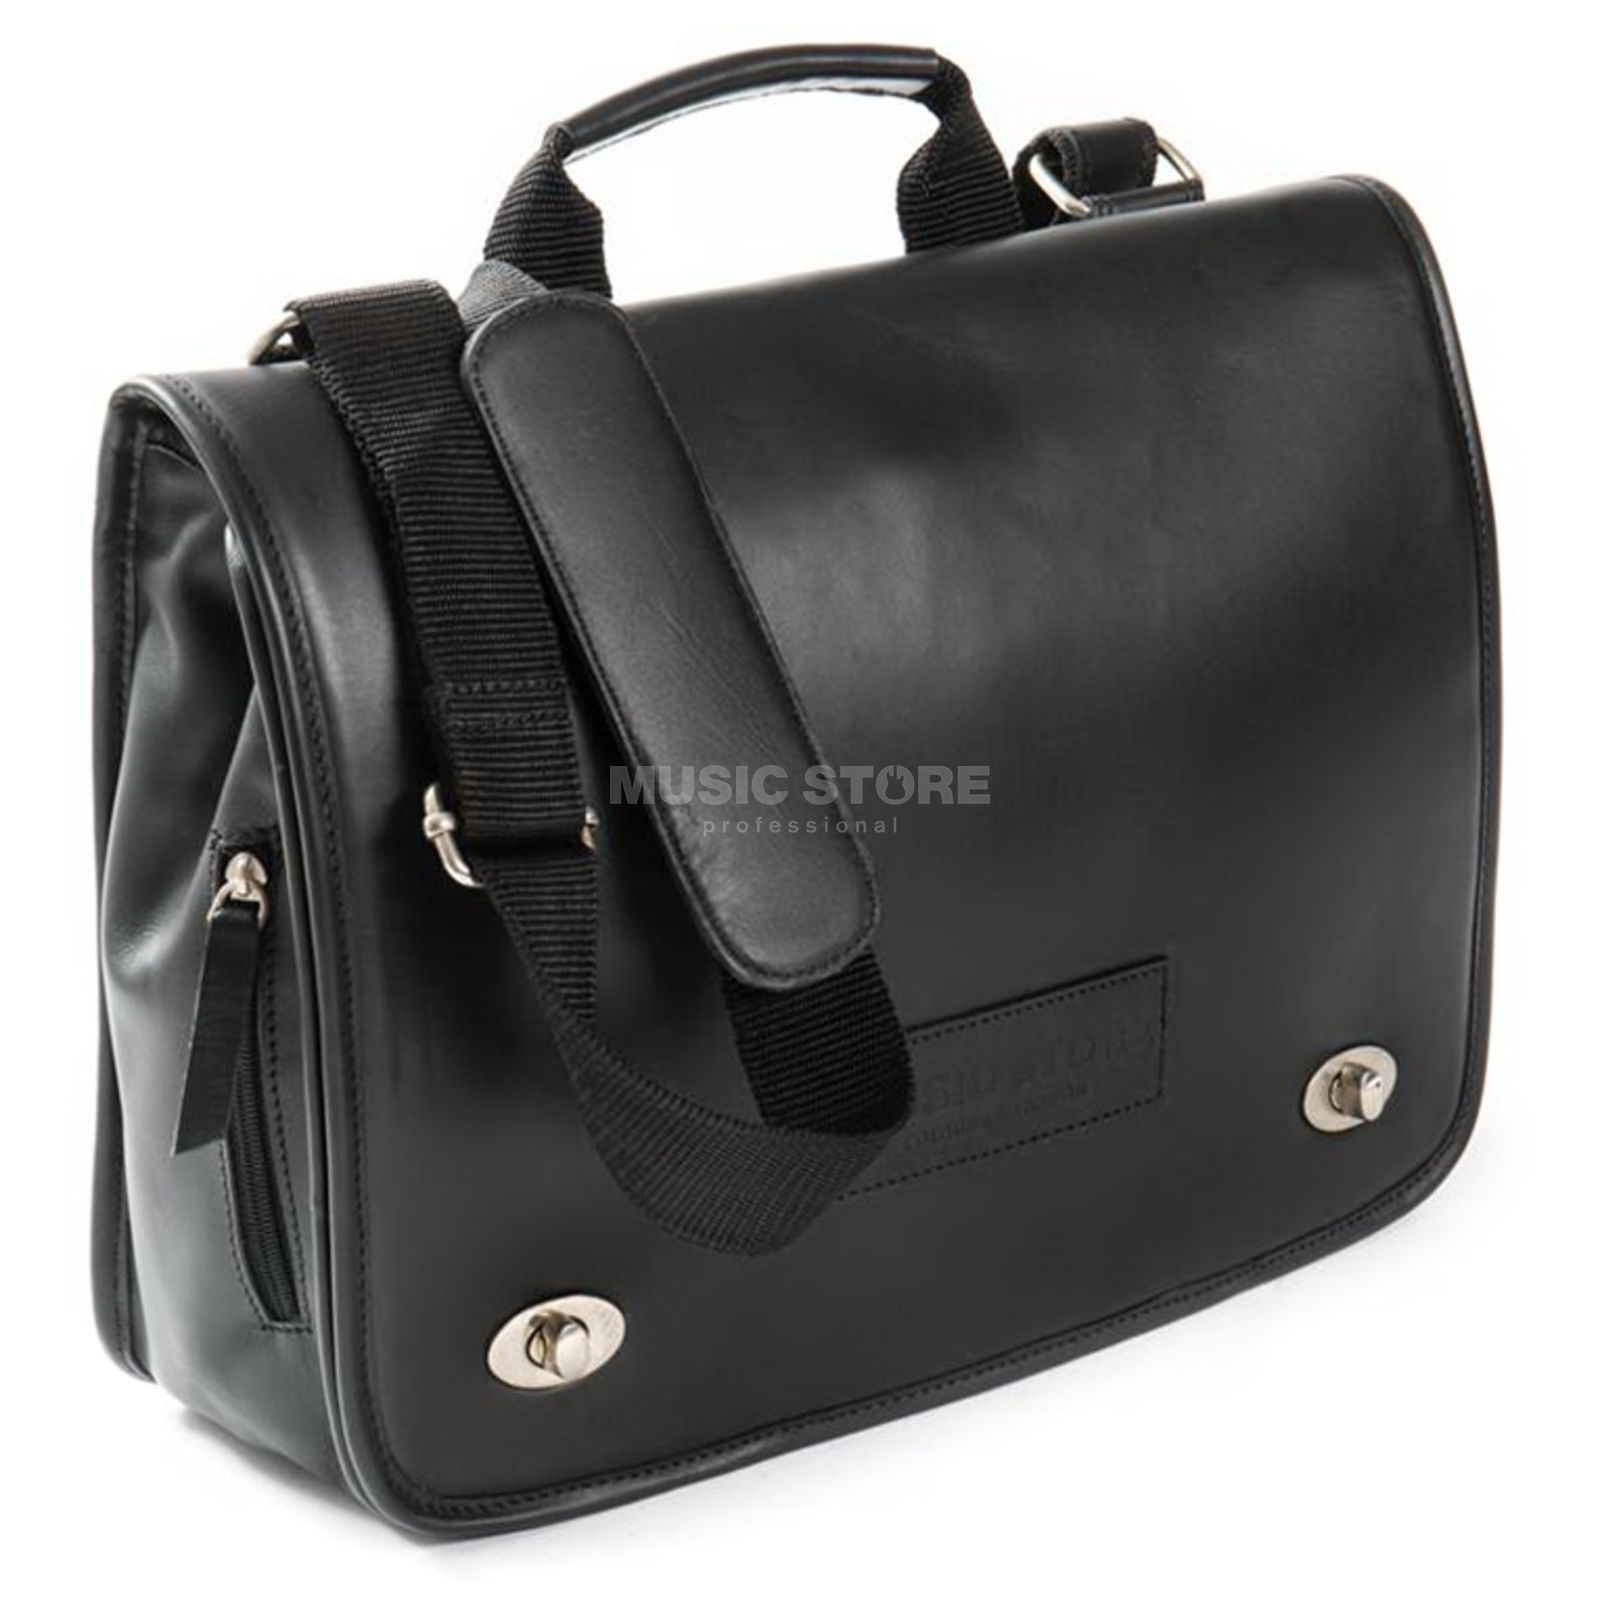 MUSIC STORE Executive Bag Leather Black EXB-01MBK/L Product Image